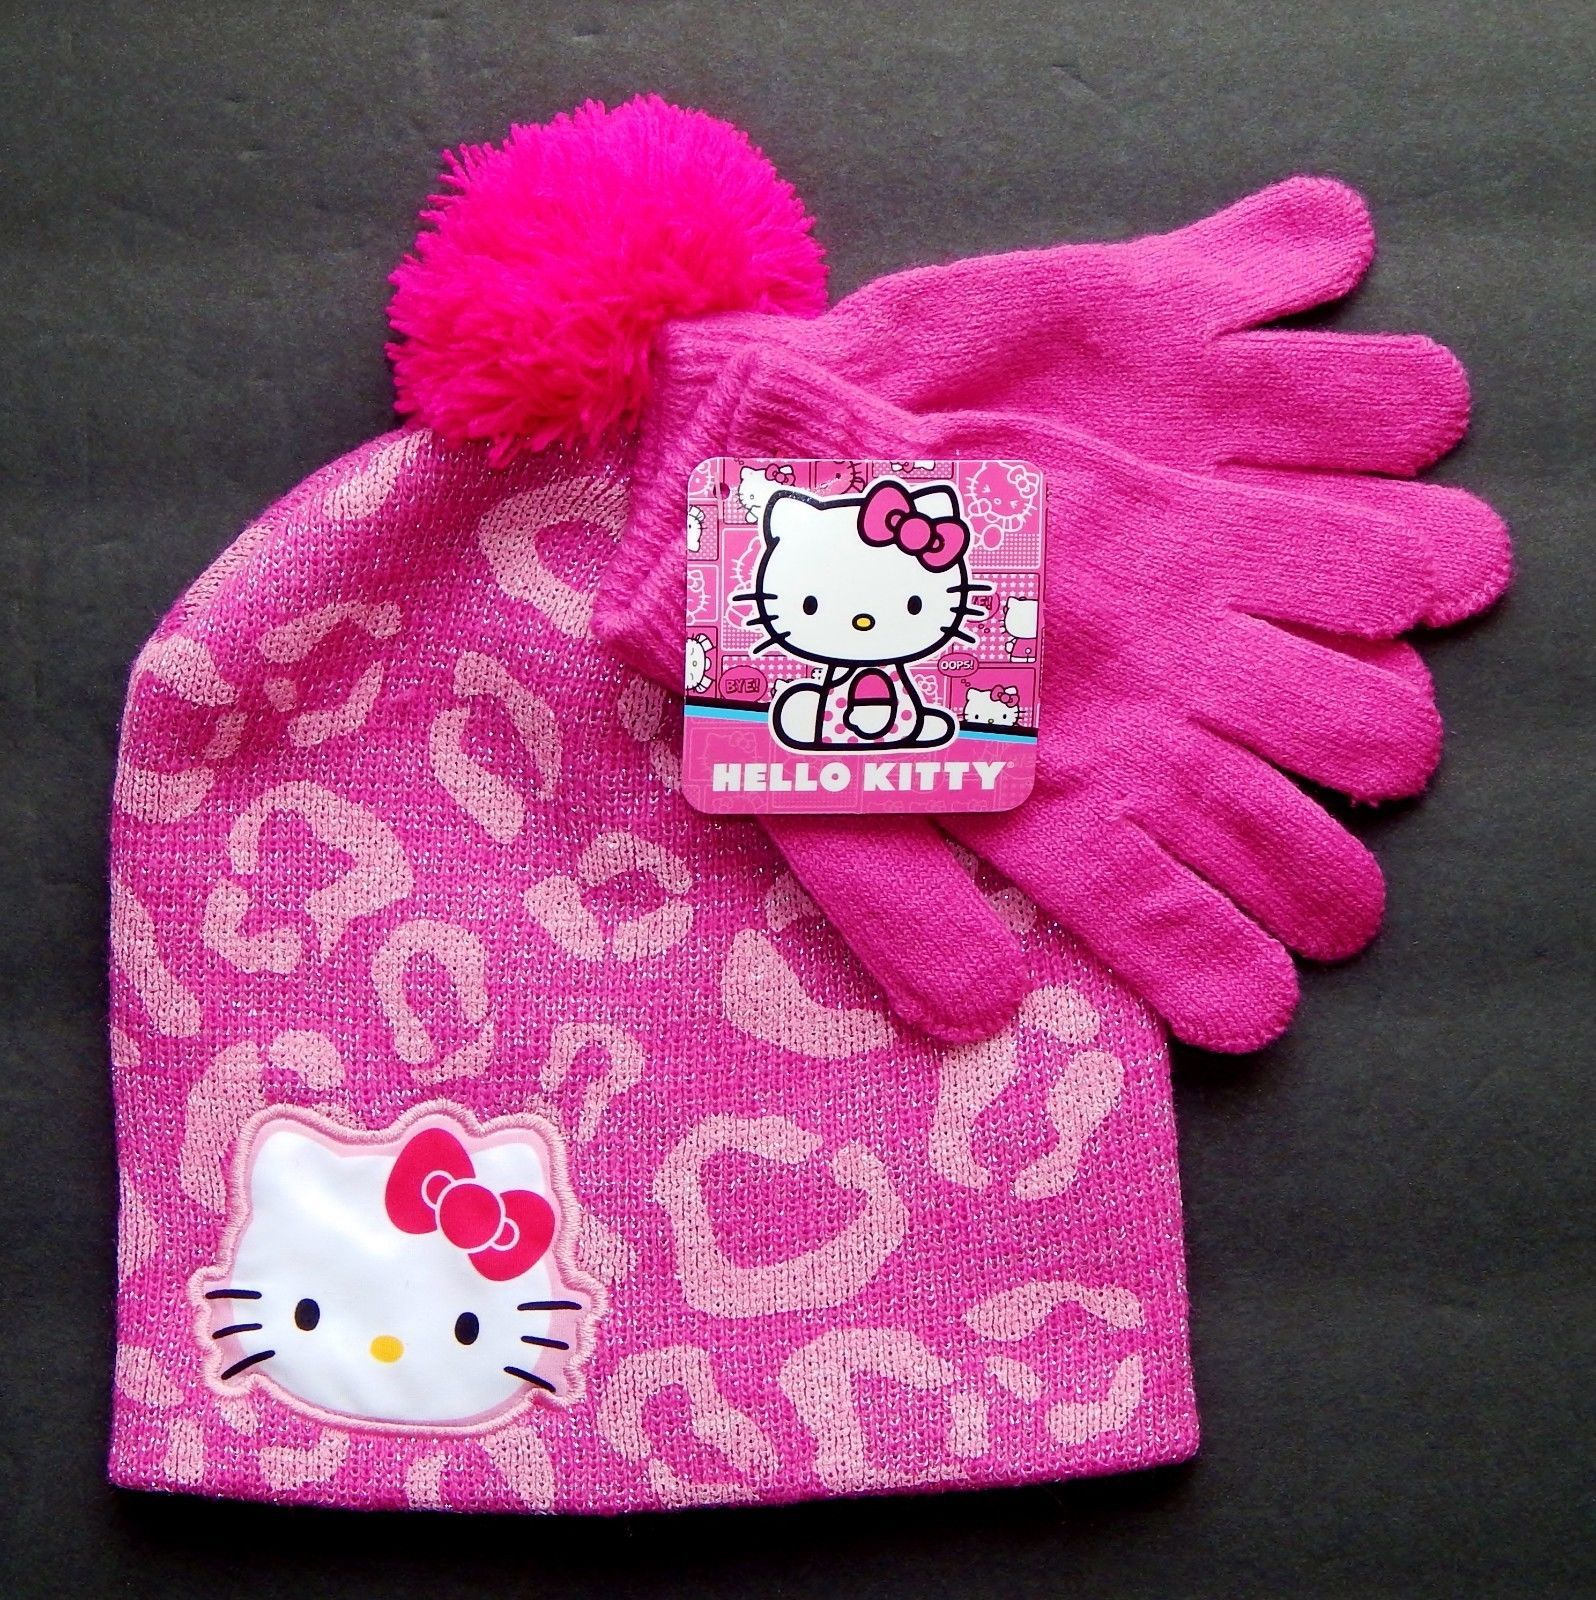 8e6e871a72e Hello Kitty Sanrio Pink Knit Beanie Winter and 12 similar items. S l1600